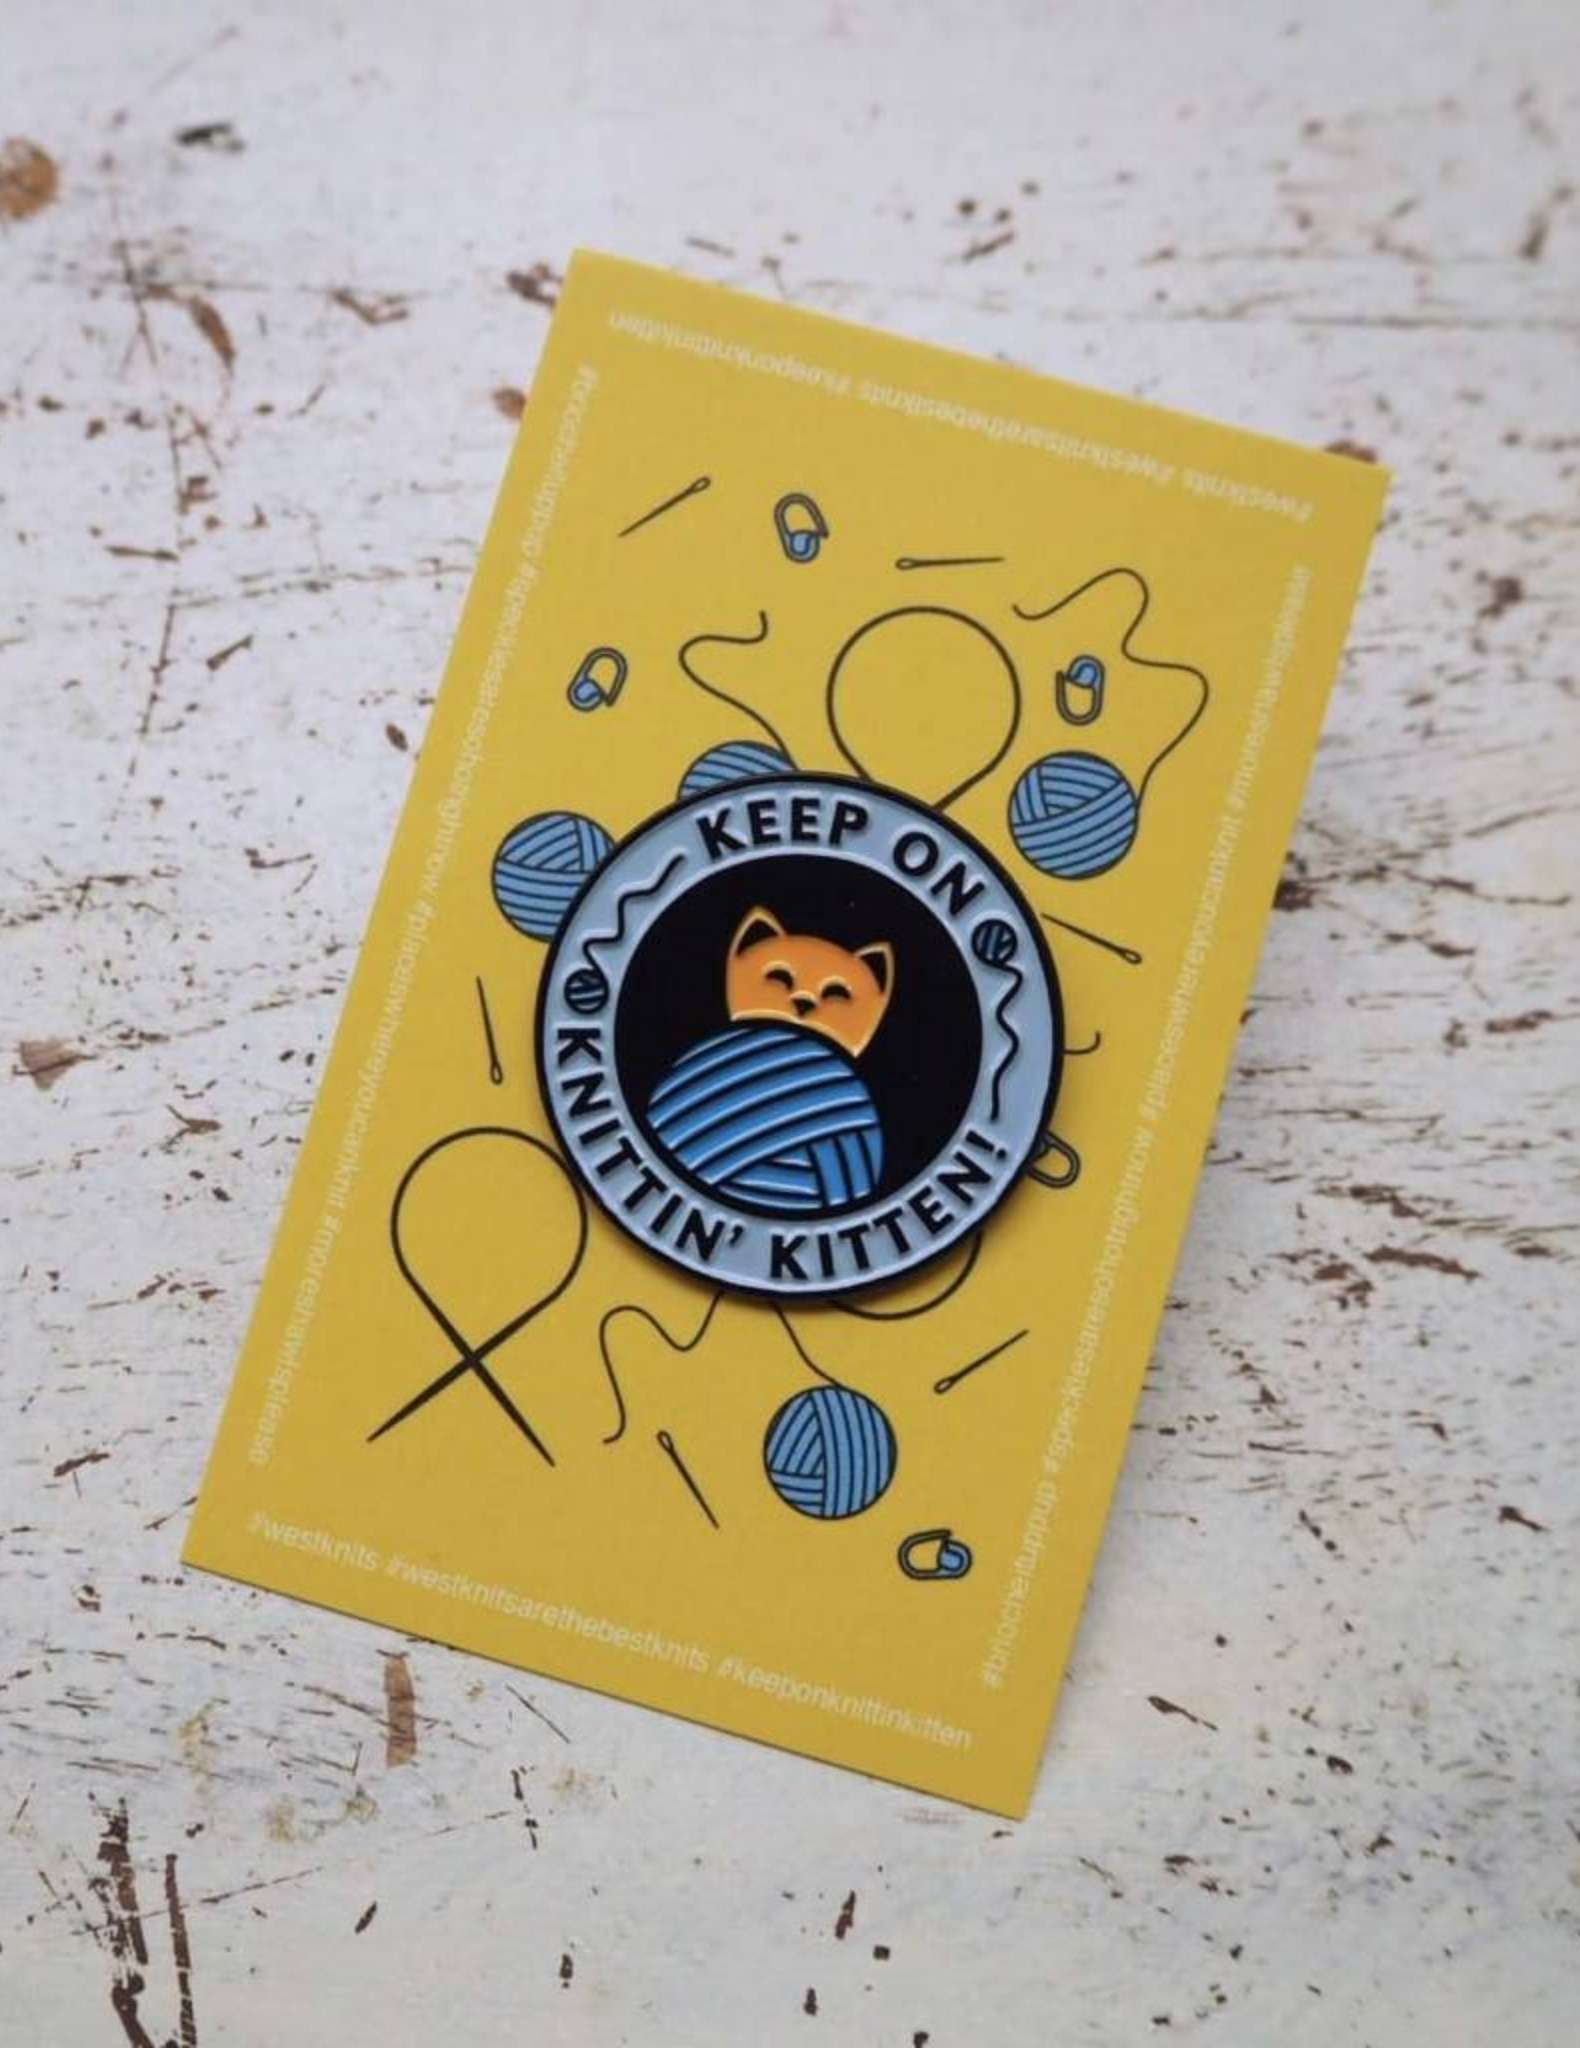 An enamel pin saying 'keep on knittin' kitten' showing a cat and a ball of yarn